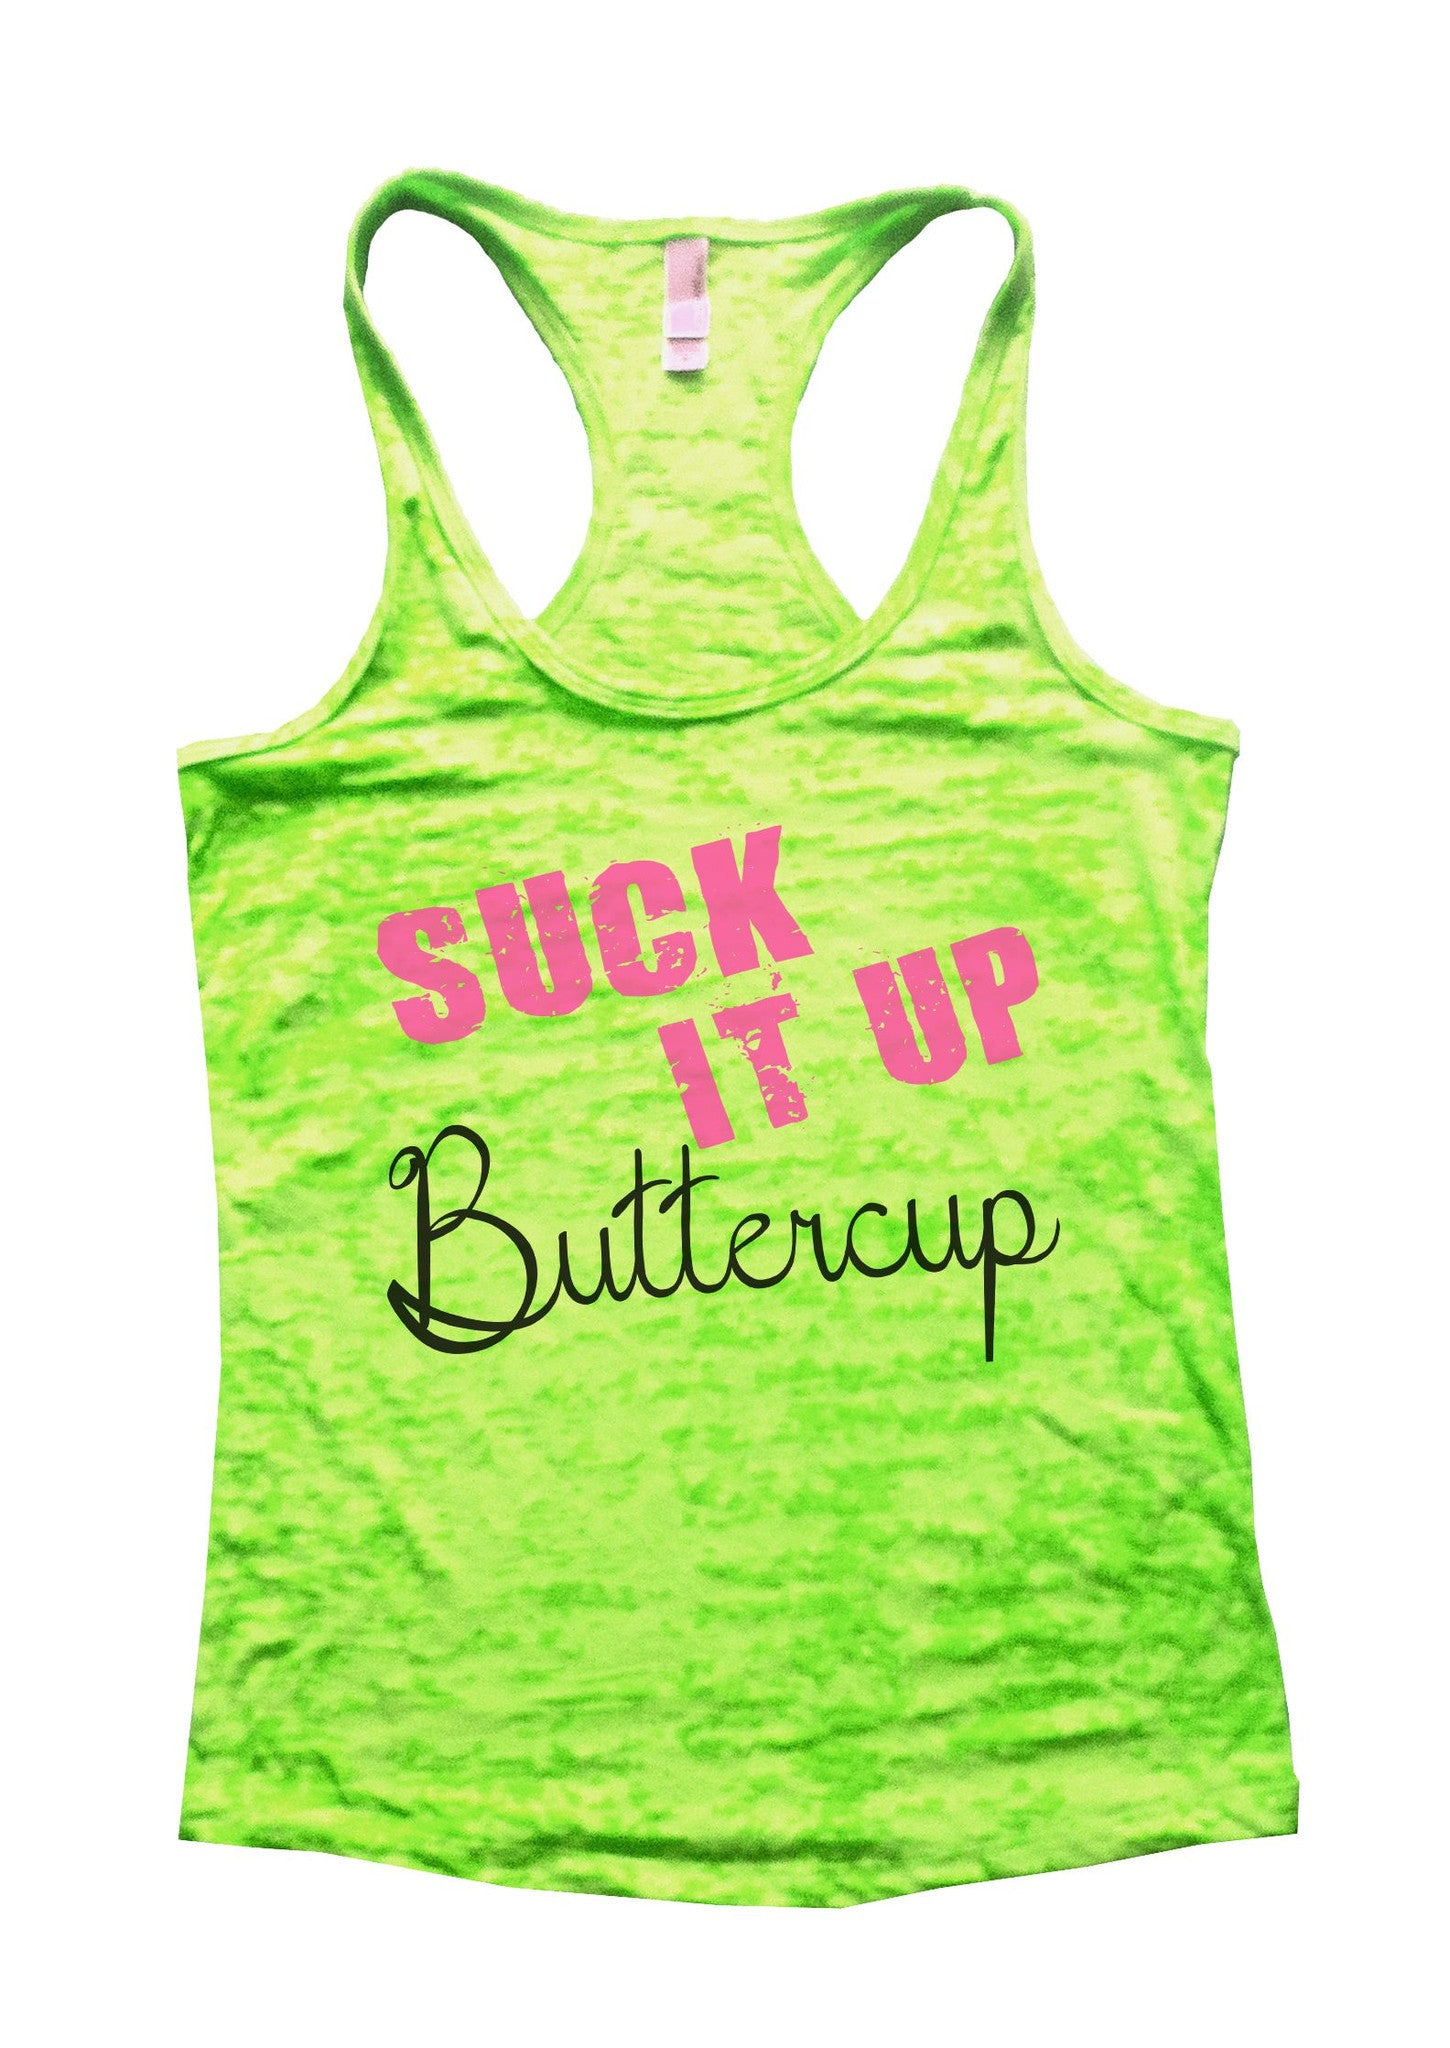 Suck It Up Buttercup Burnout Tank Top By BurnoutTankTops.com - 774 - Funny Shirts Tank Tops Burnouts and Triblends  - 2